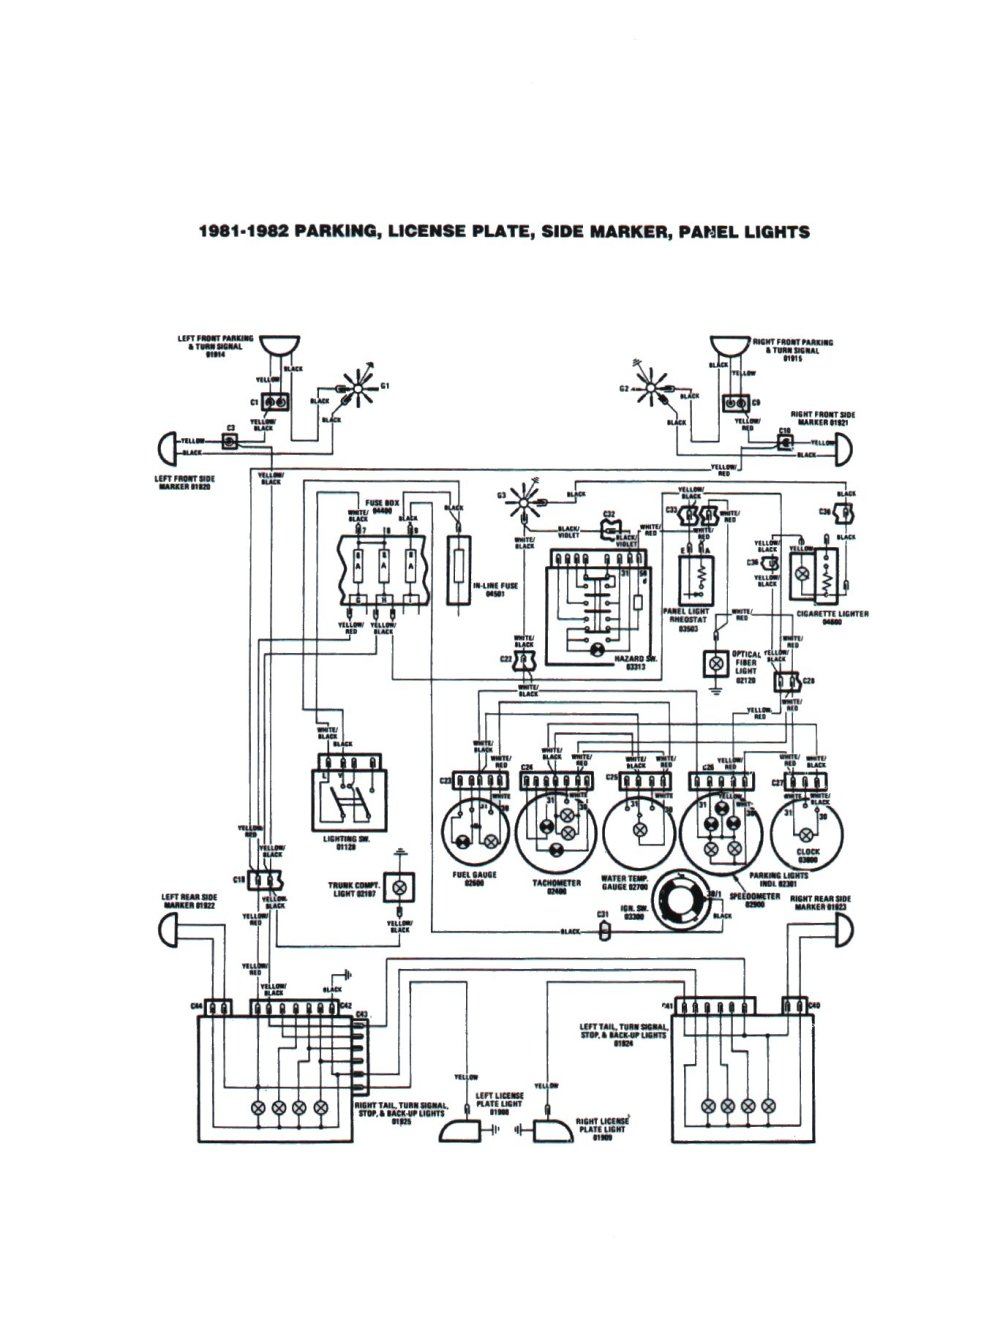 medium resolution of fiat 124 spider 1977 fuse box diagram 37 wiring diagram fiat 500 engine diagram fiat 500